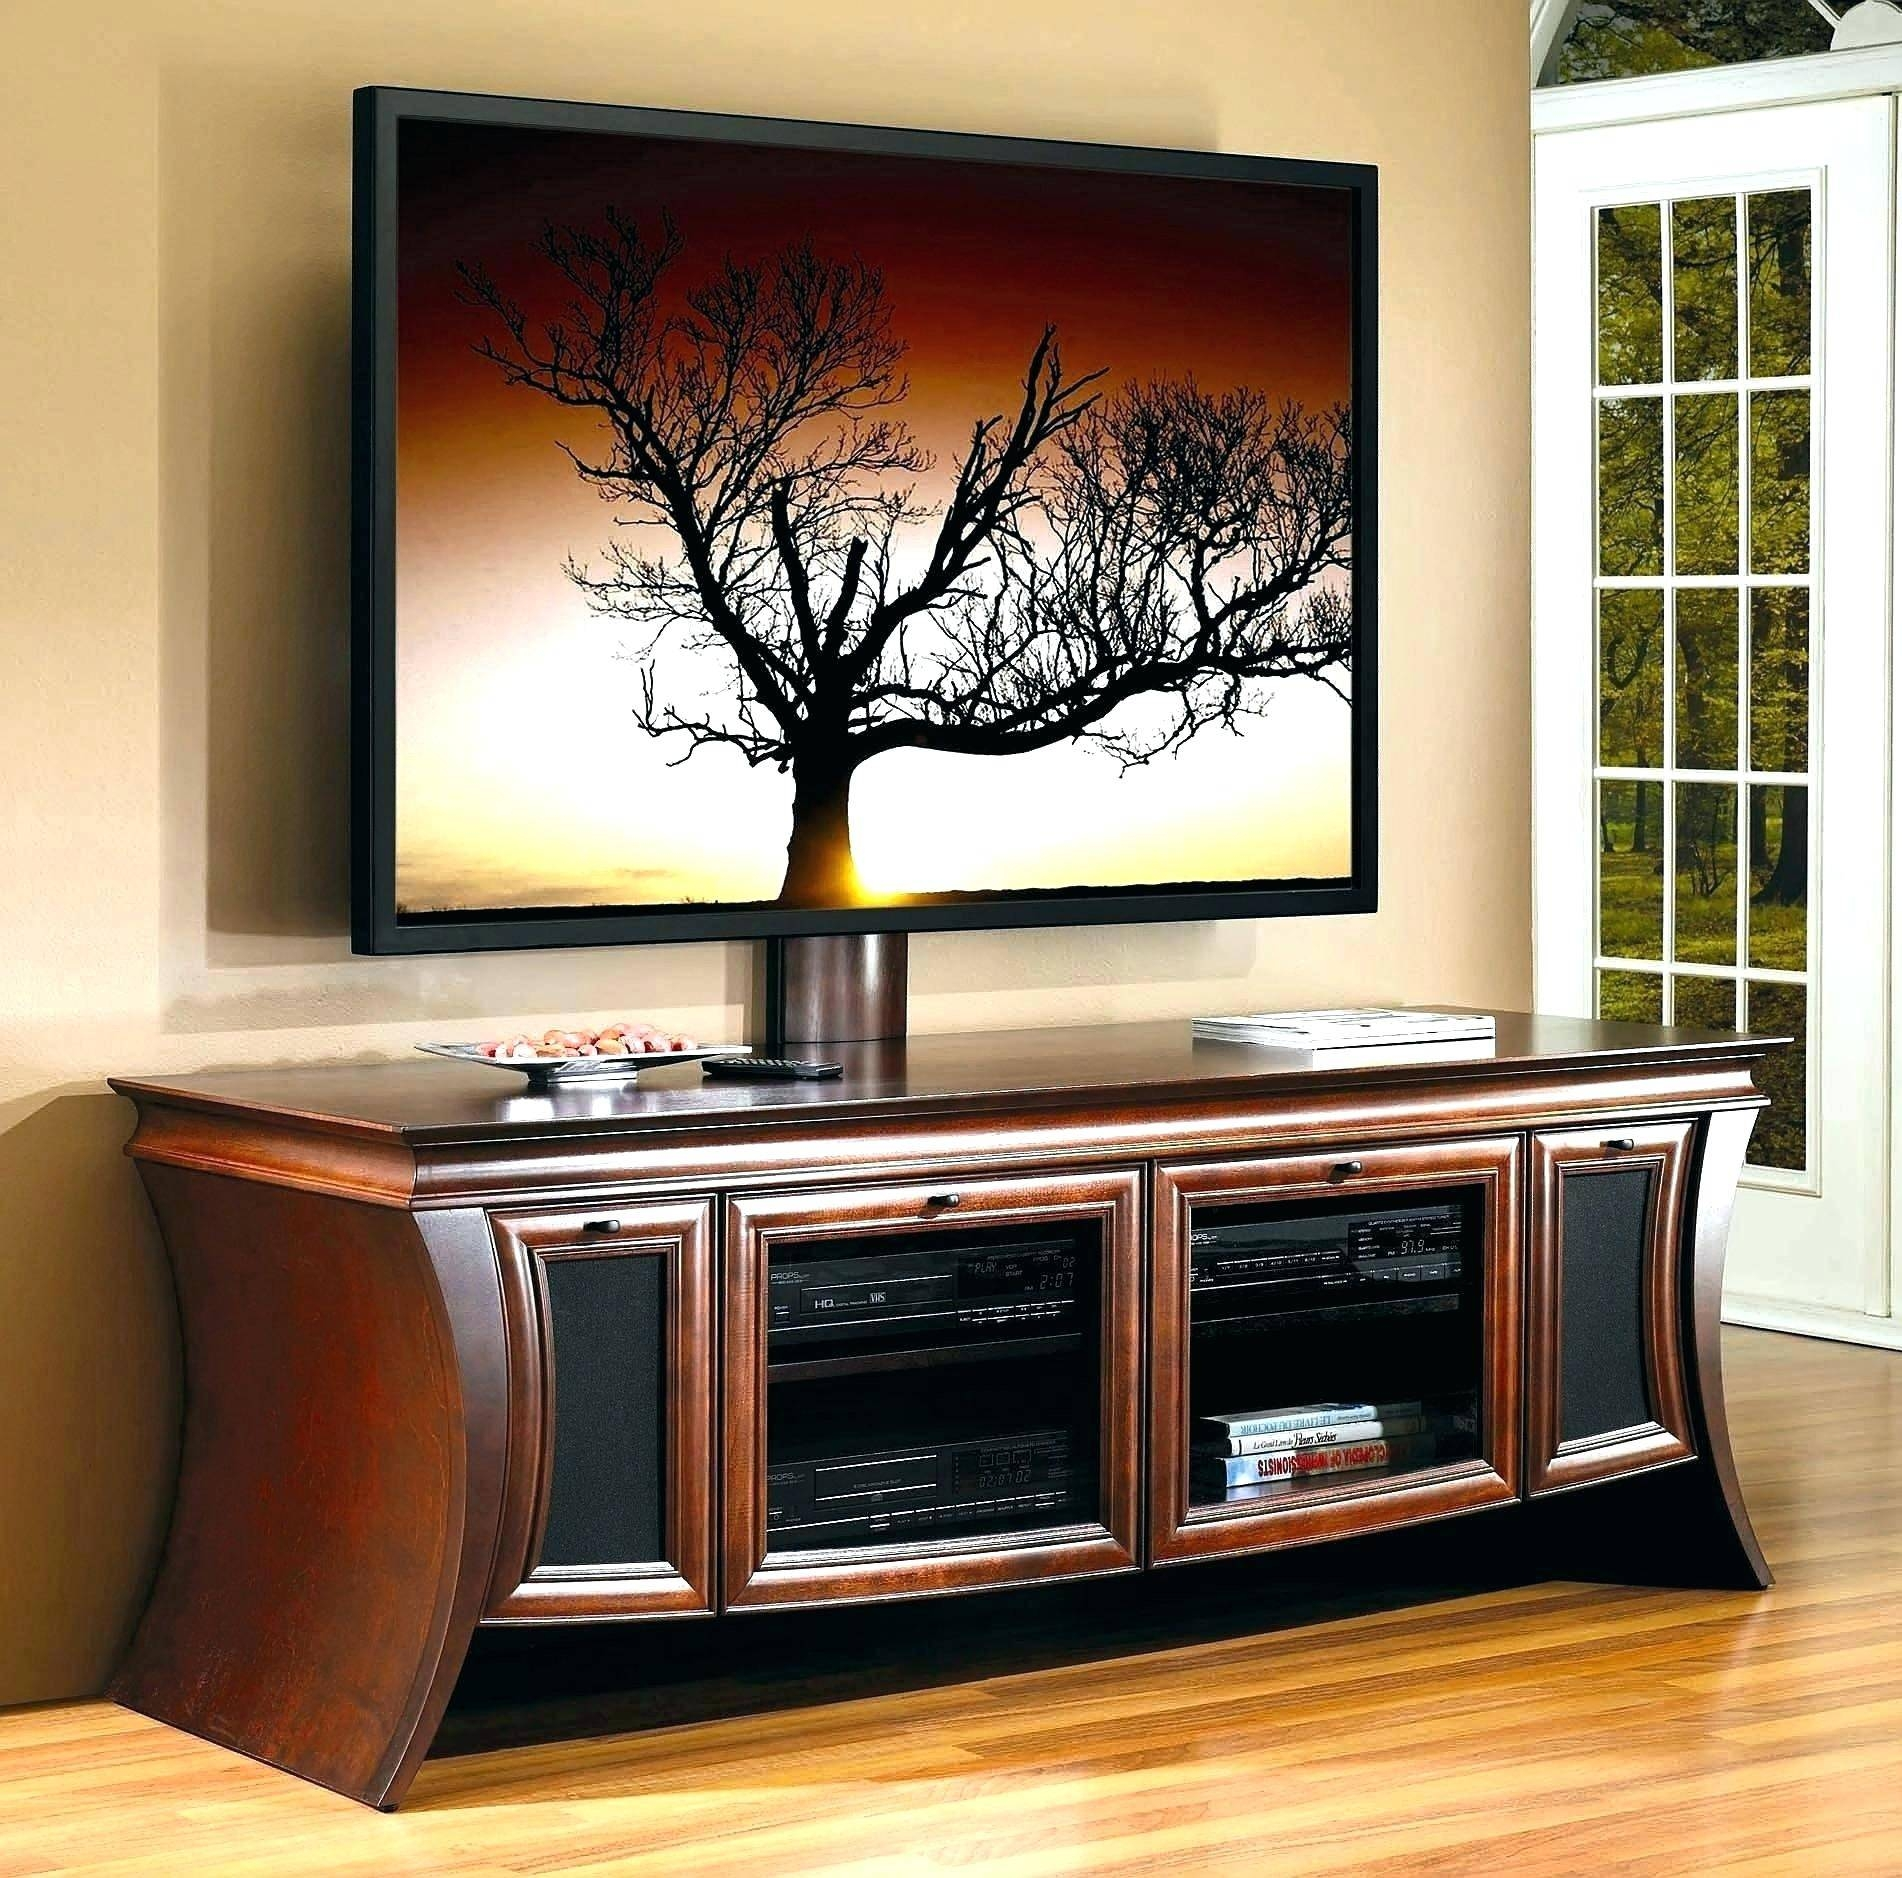 Tv Stand : Stupendous 60 Tv Stand Contemporary Corner Media inside Corner Tv Stands for 60 Inch Flat Screens (Image 13 of 15)